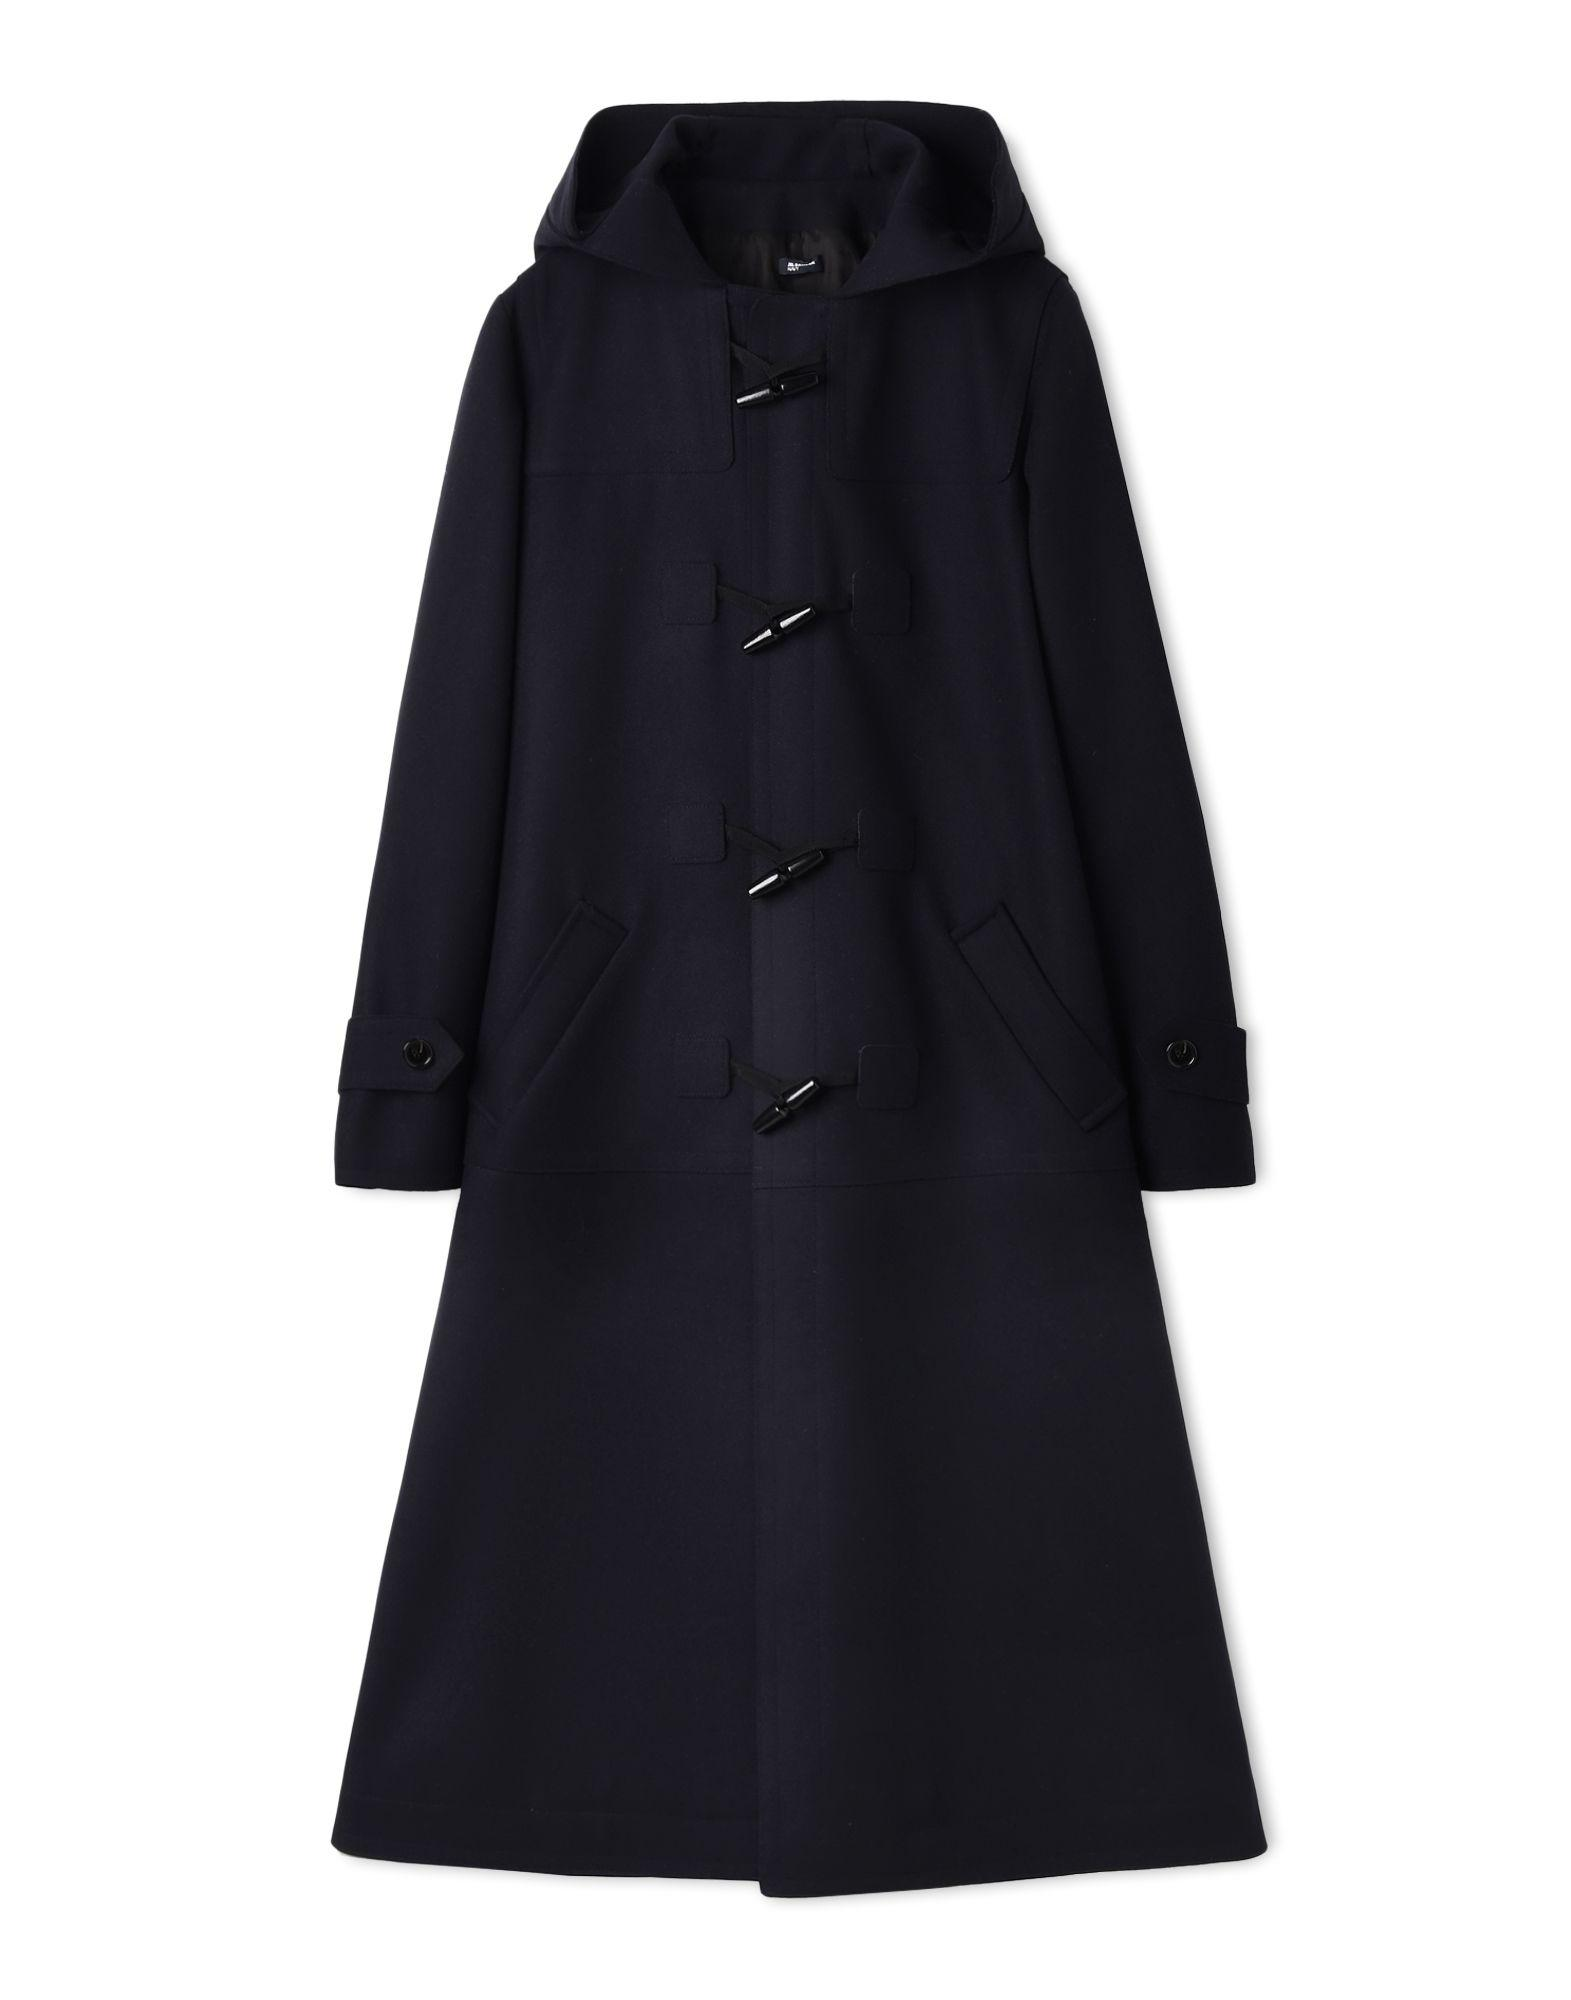 Jil Sander Coat - Dark Blue